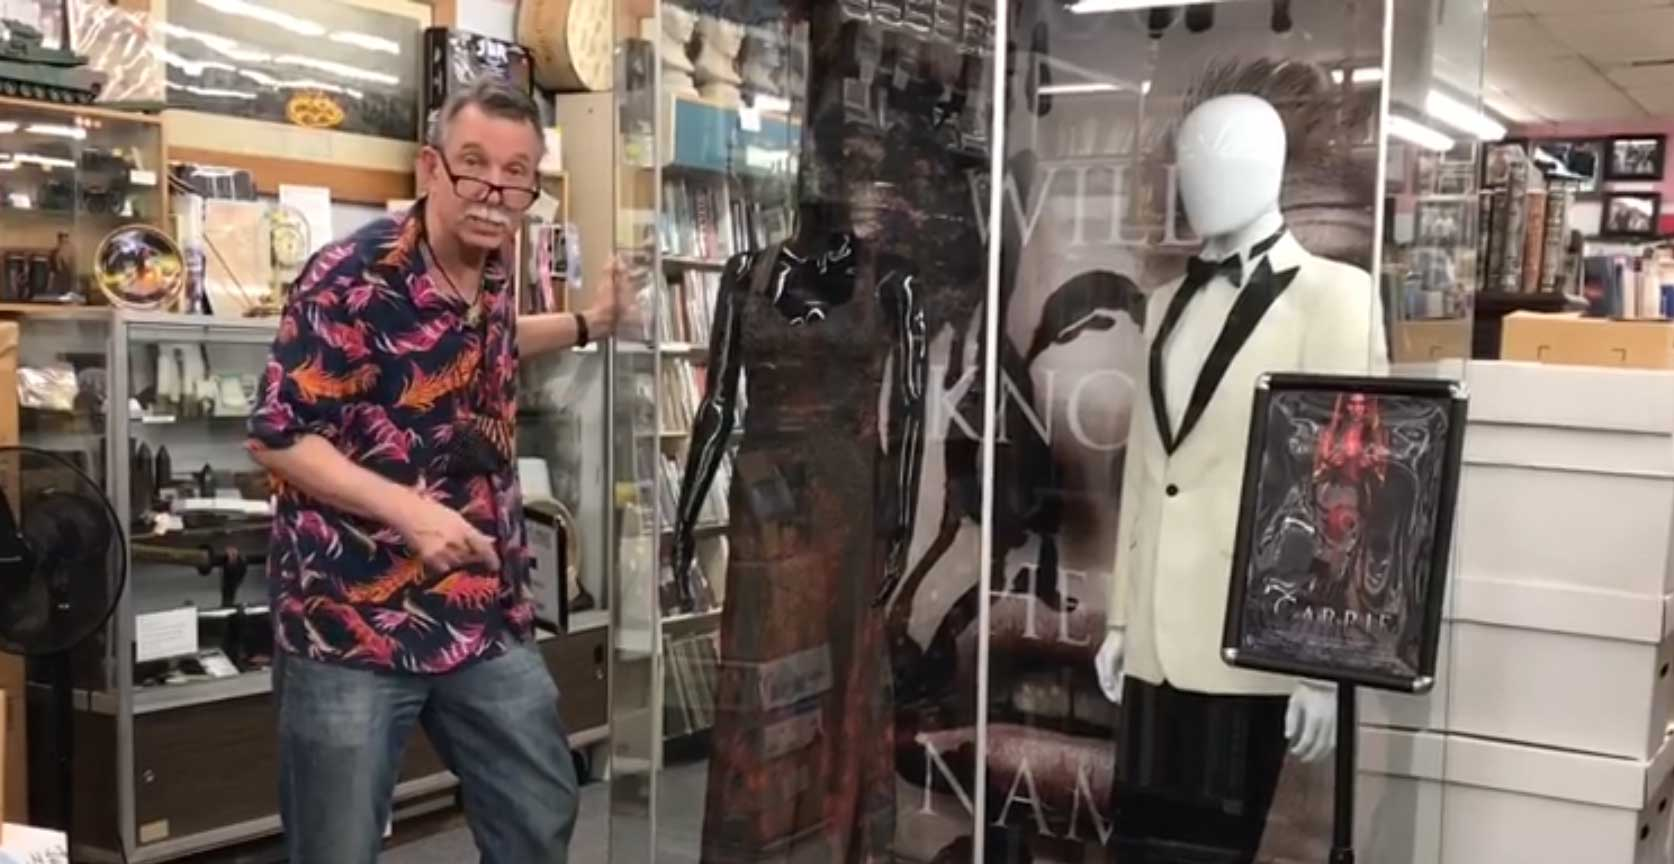 Washington Street Books Shows off 'Carrie' Movie Costumes